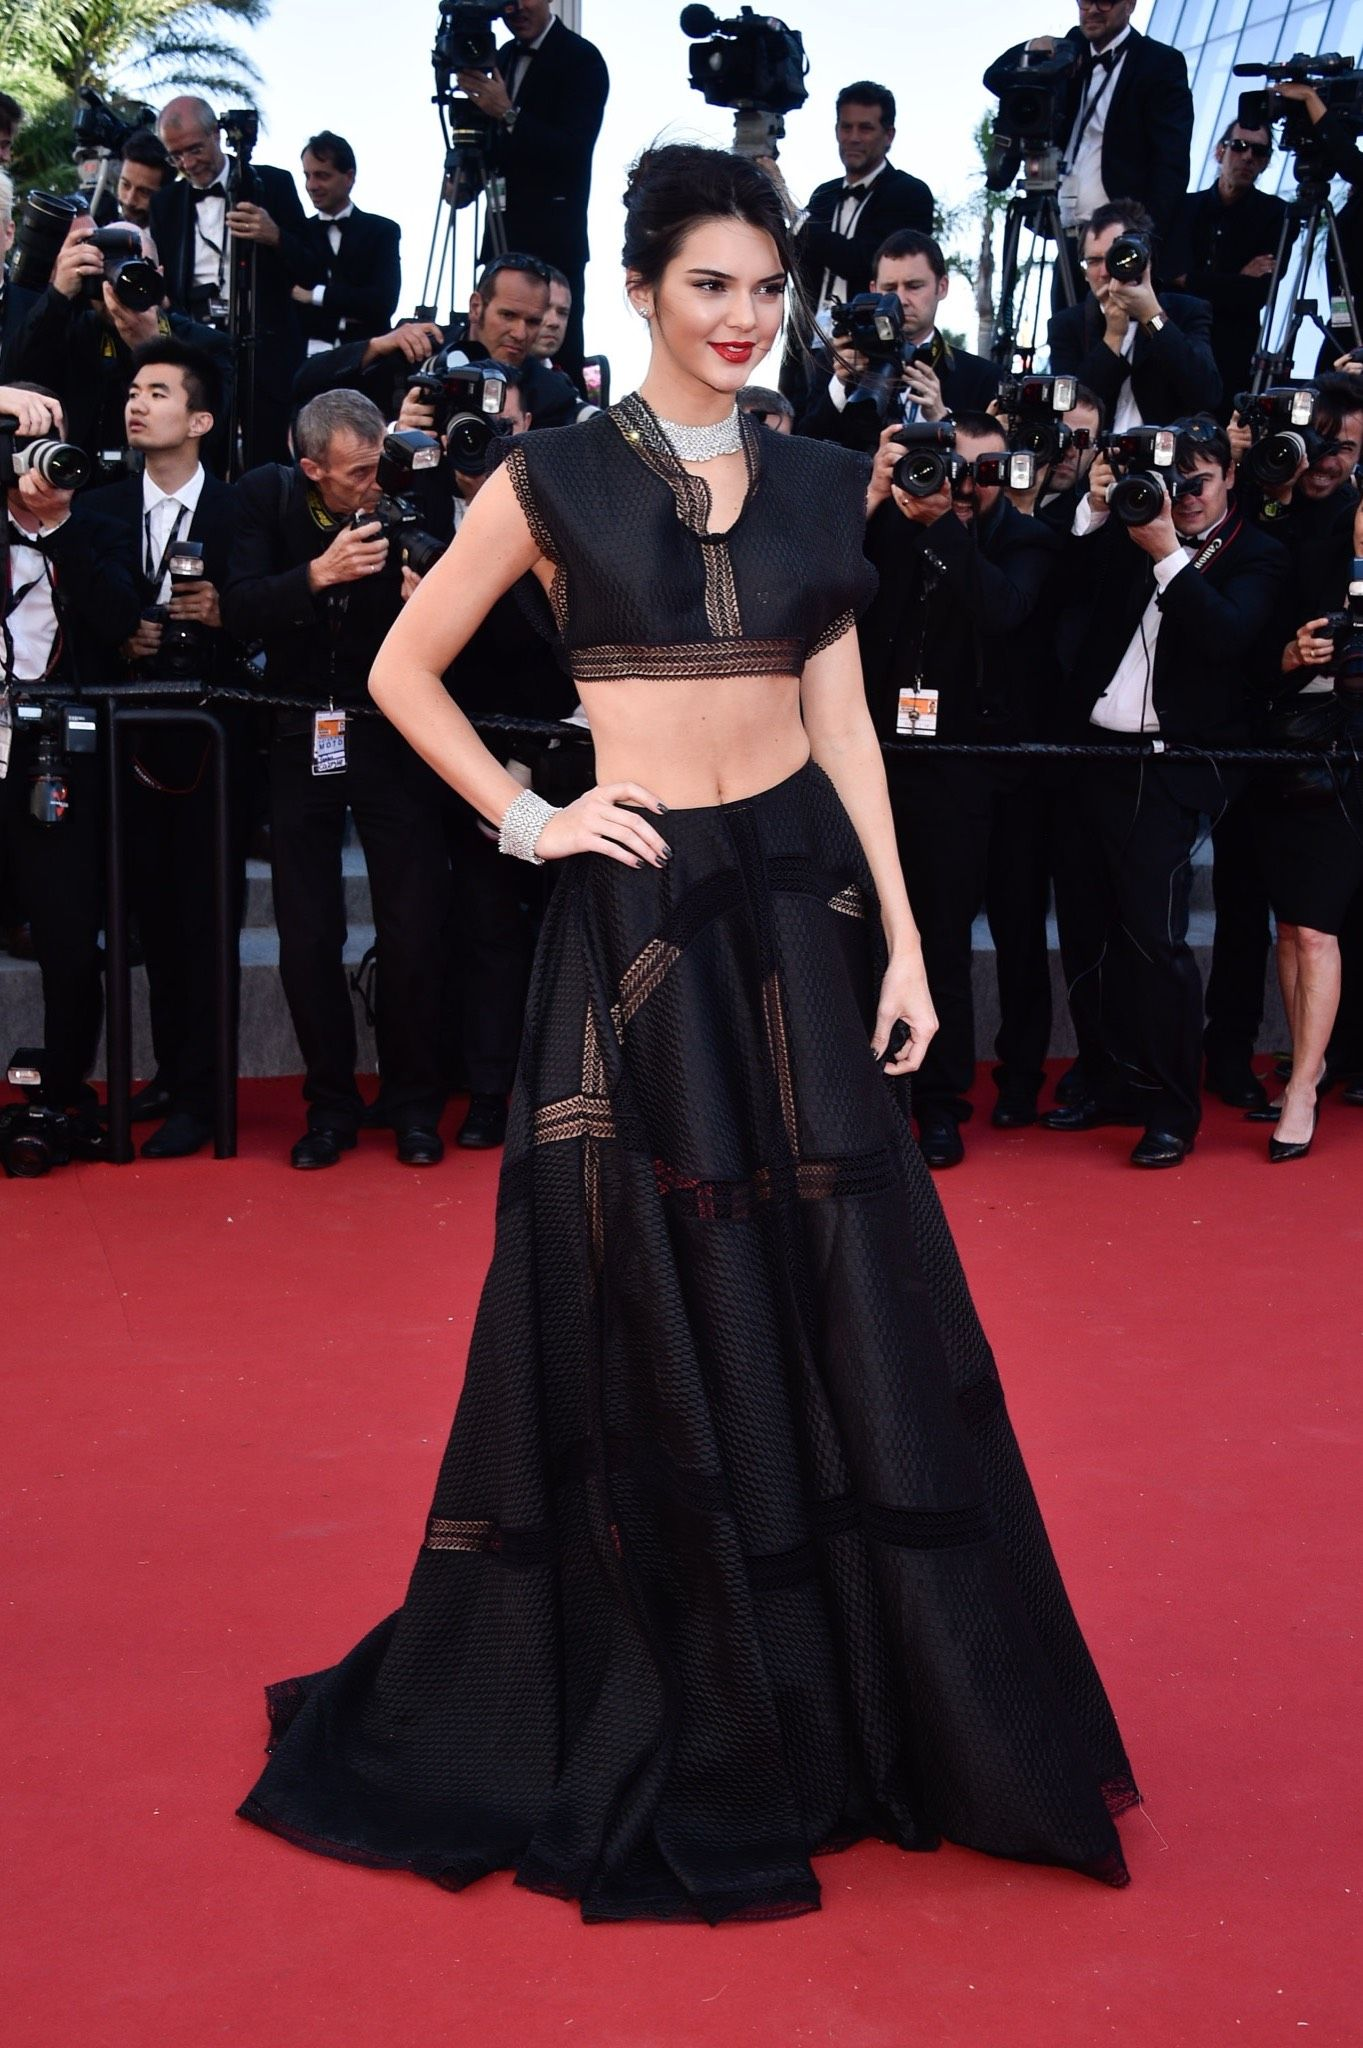 Thoughts from the Editor: Cannes Red Carpet 2015